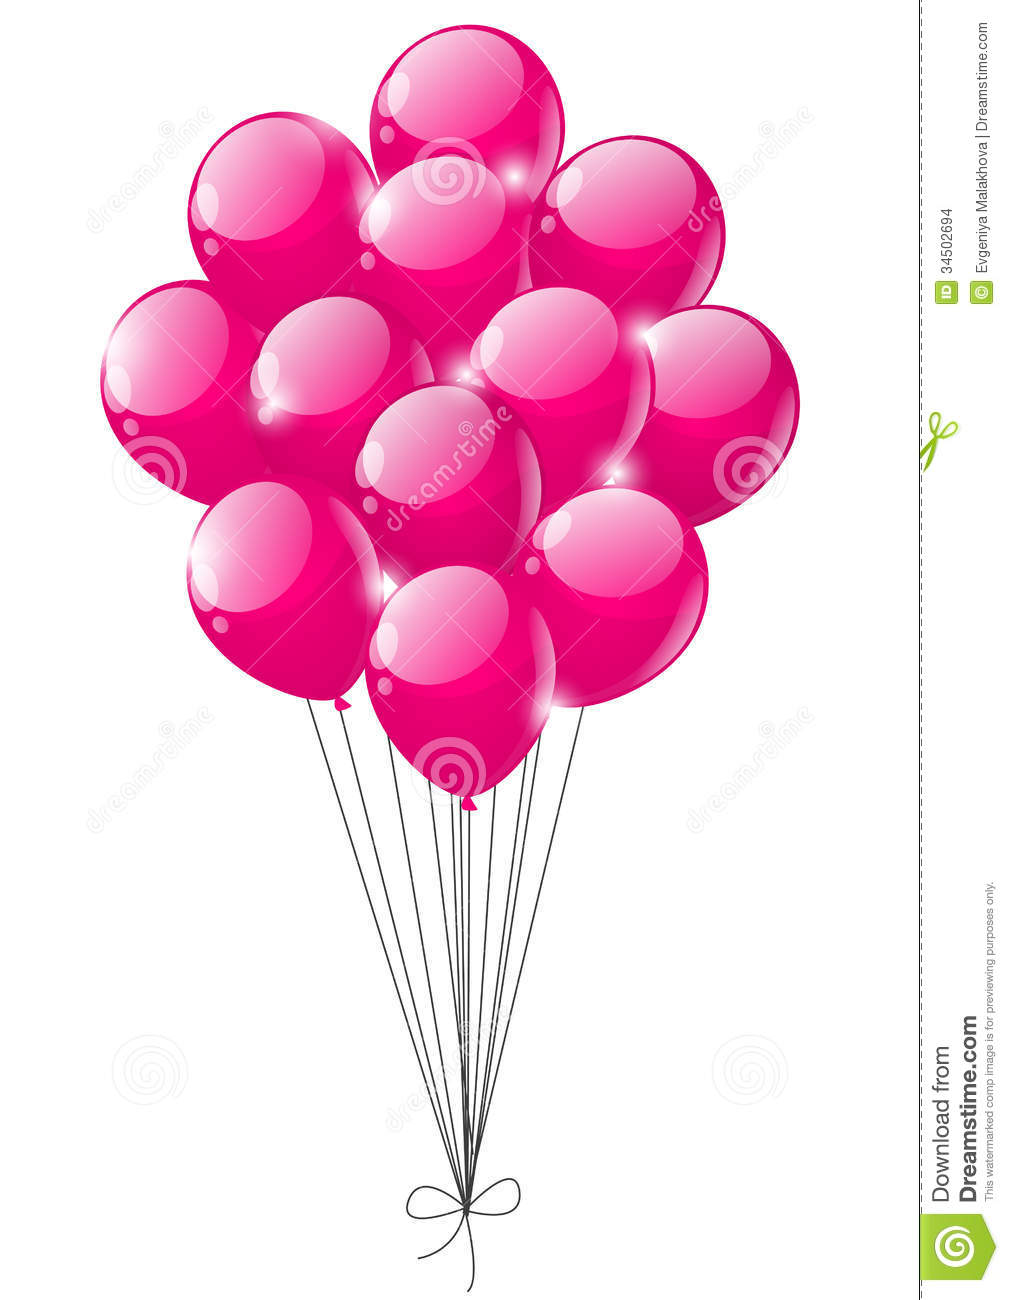 Pink Balloons Stock Images - Image: 34502694